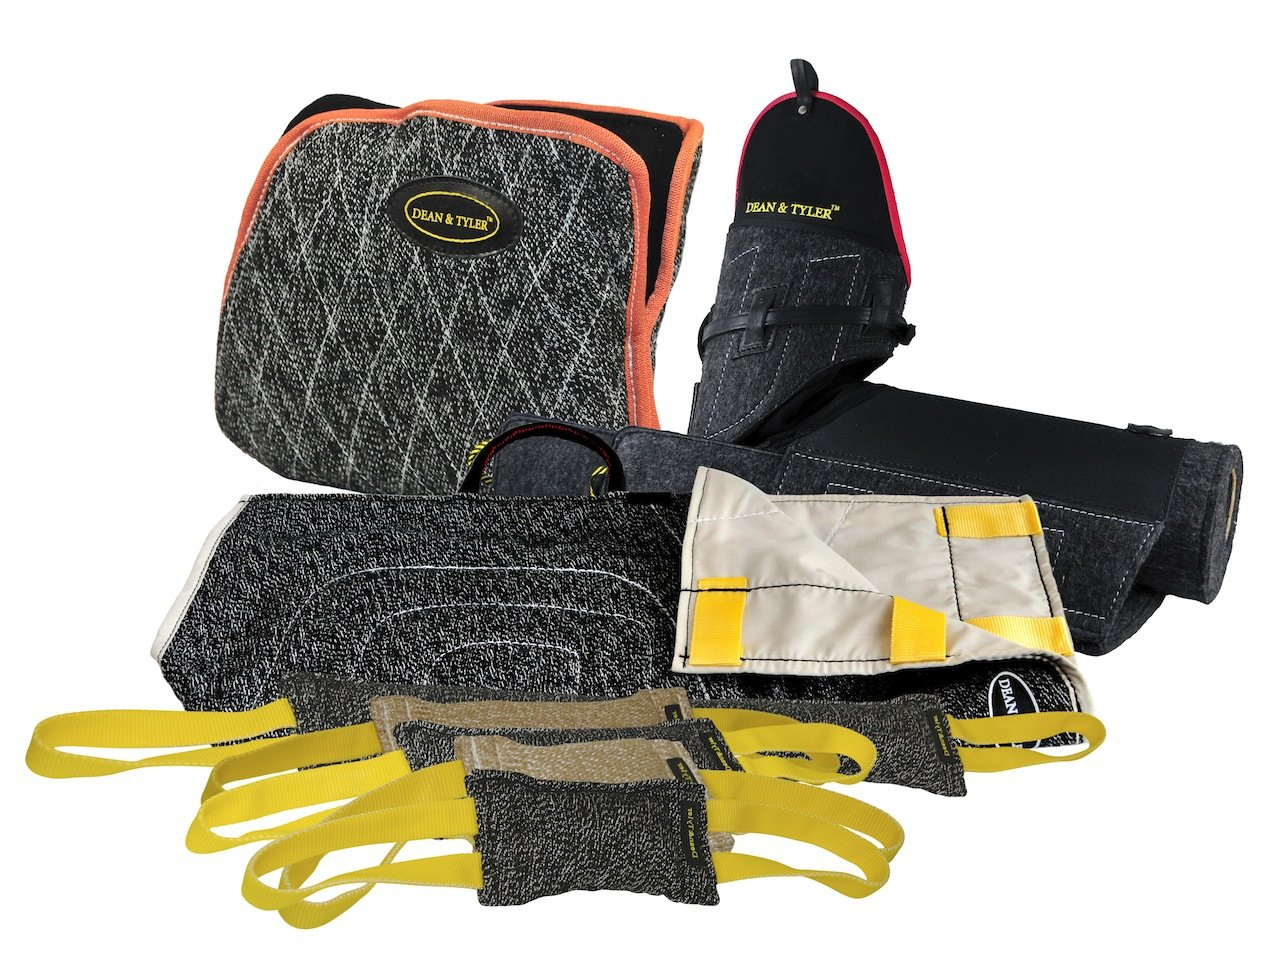 Dean & Tyler 8-Piece Professional Training Bundle Set for Dogs with 1 Tri-Bite Sleeve/1 French Linen Cover/1 Advanced Bite Builder/5 Mixed Tugs